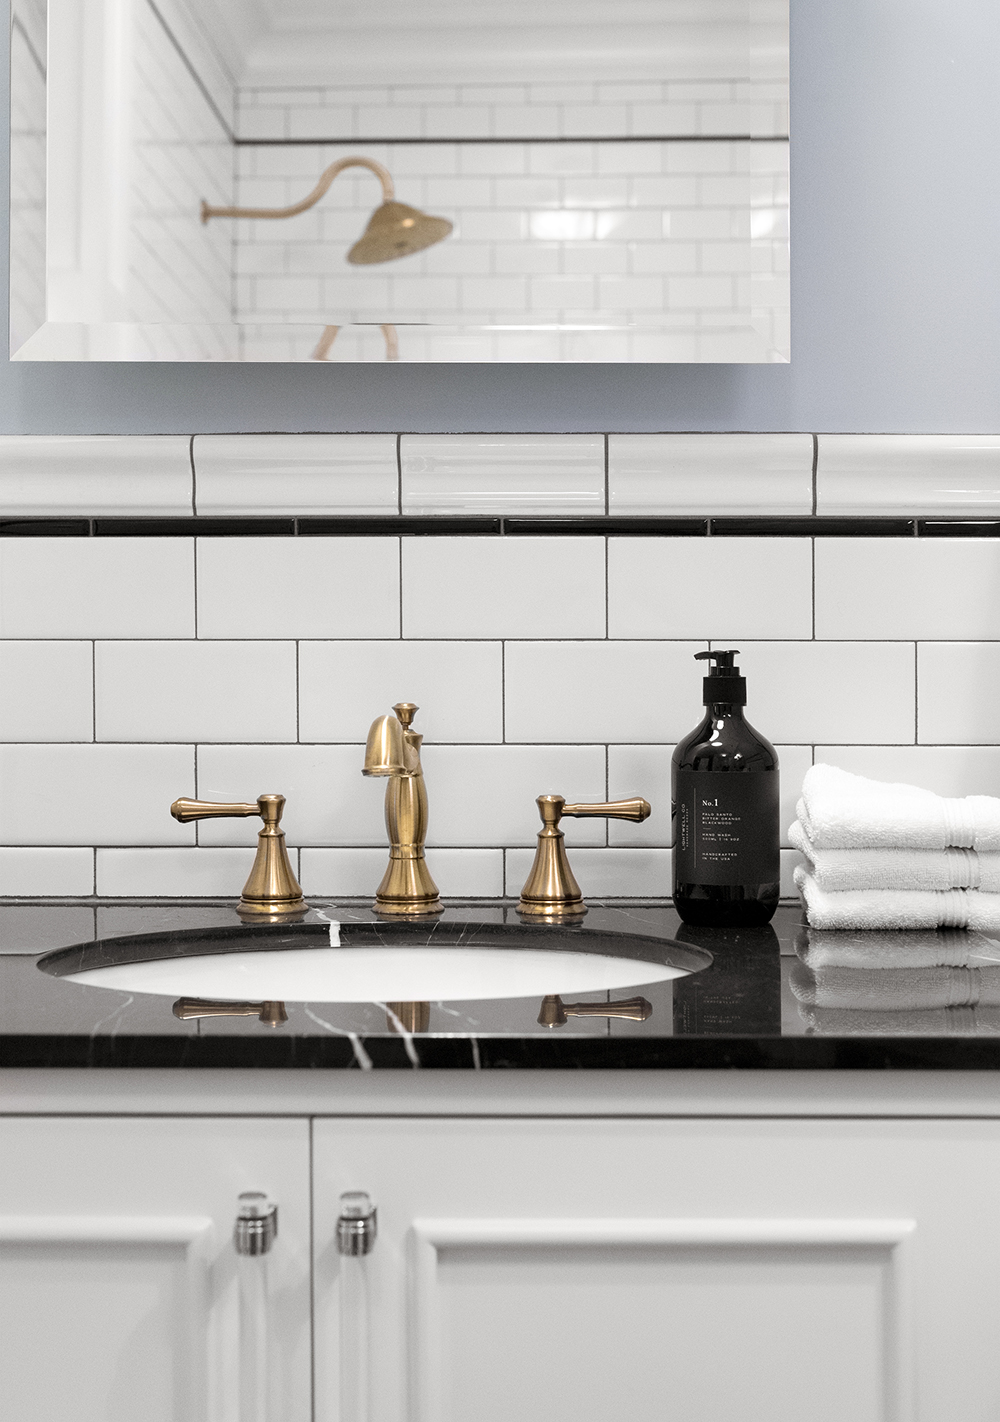 Noteworthy : Inspiring Links, Updates, and Interiors - roomfortuesday.com